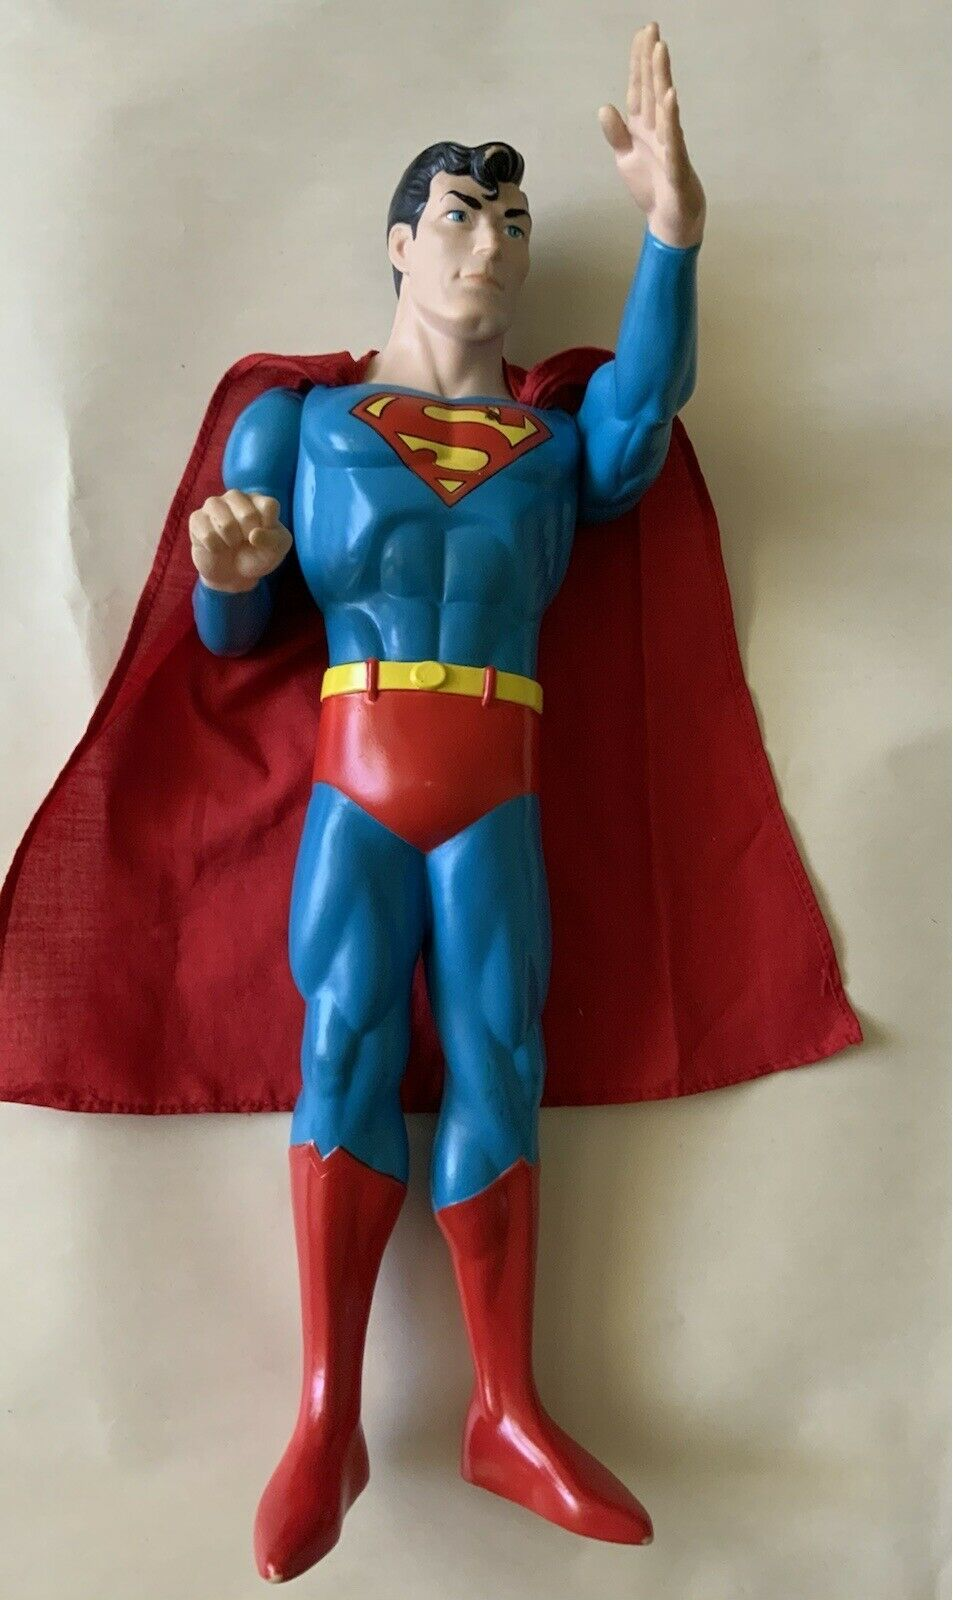 1988 Authentic DC comics Superman Doll Cape Action Figure 15 inch Toy VERY RARE - $44.99